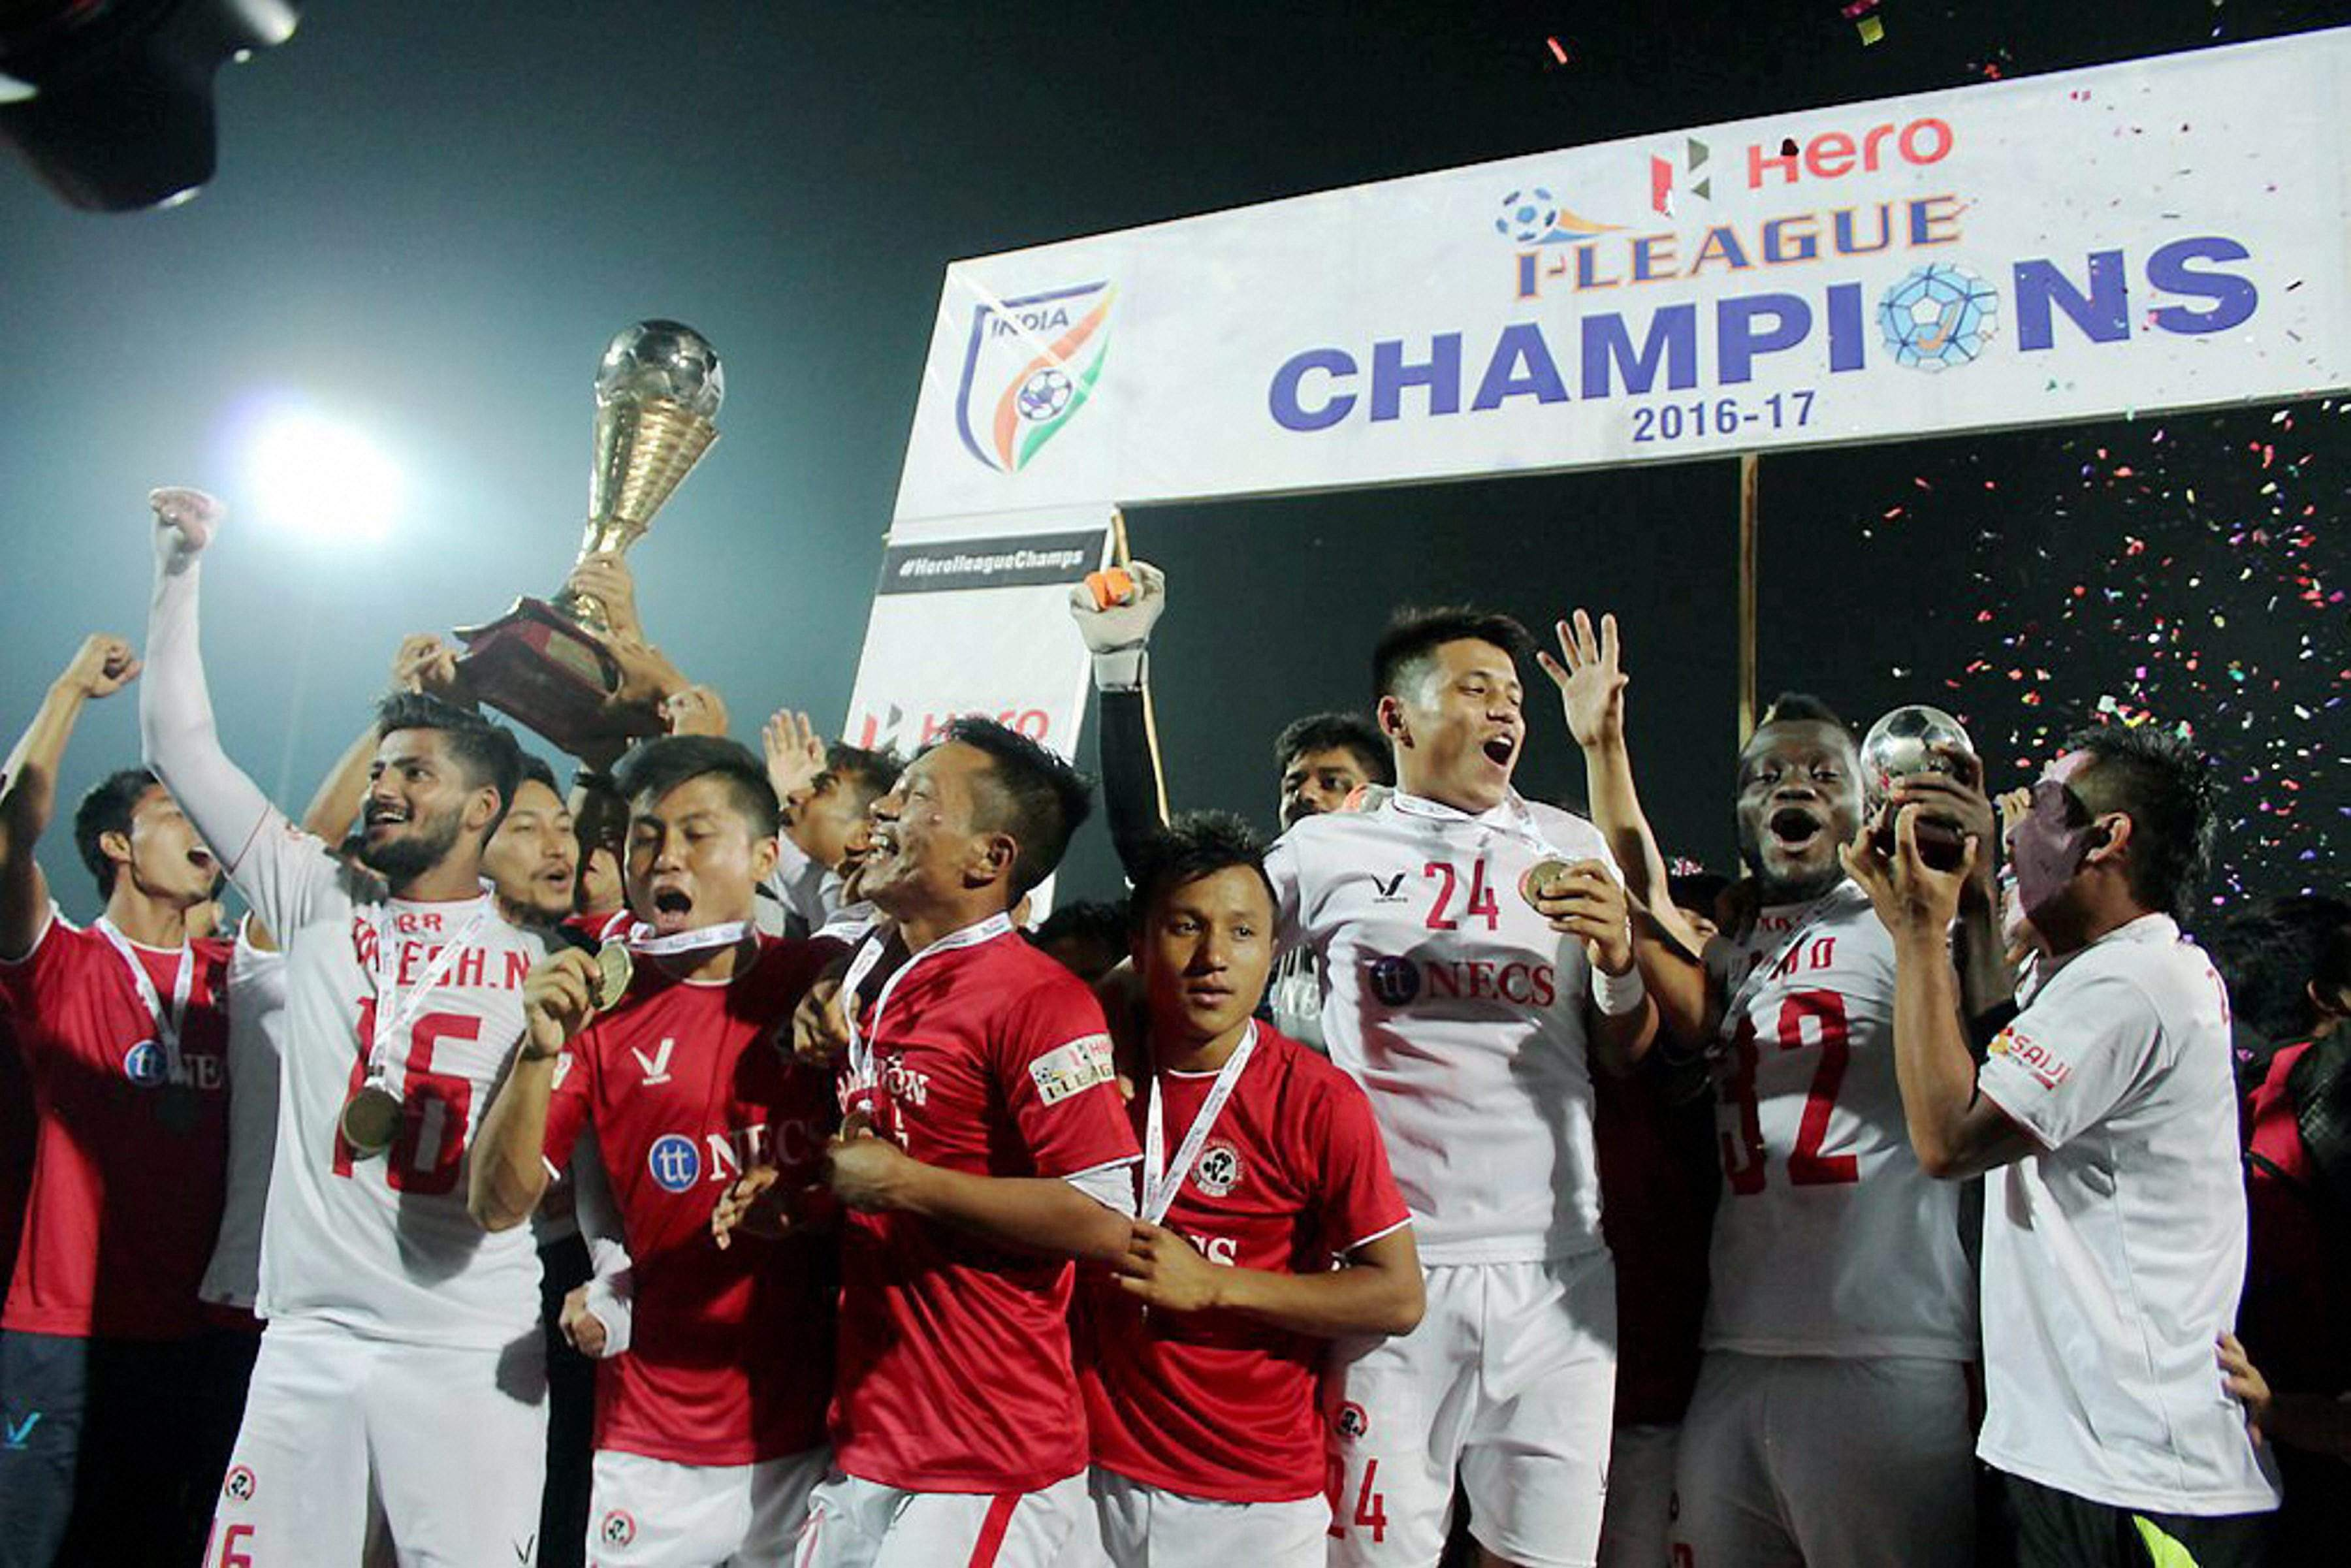 Aizawl FC's Demotion After Winning the I-League is Unfair and Wrong